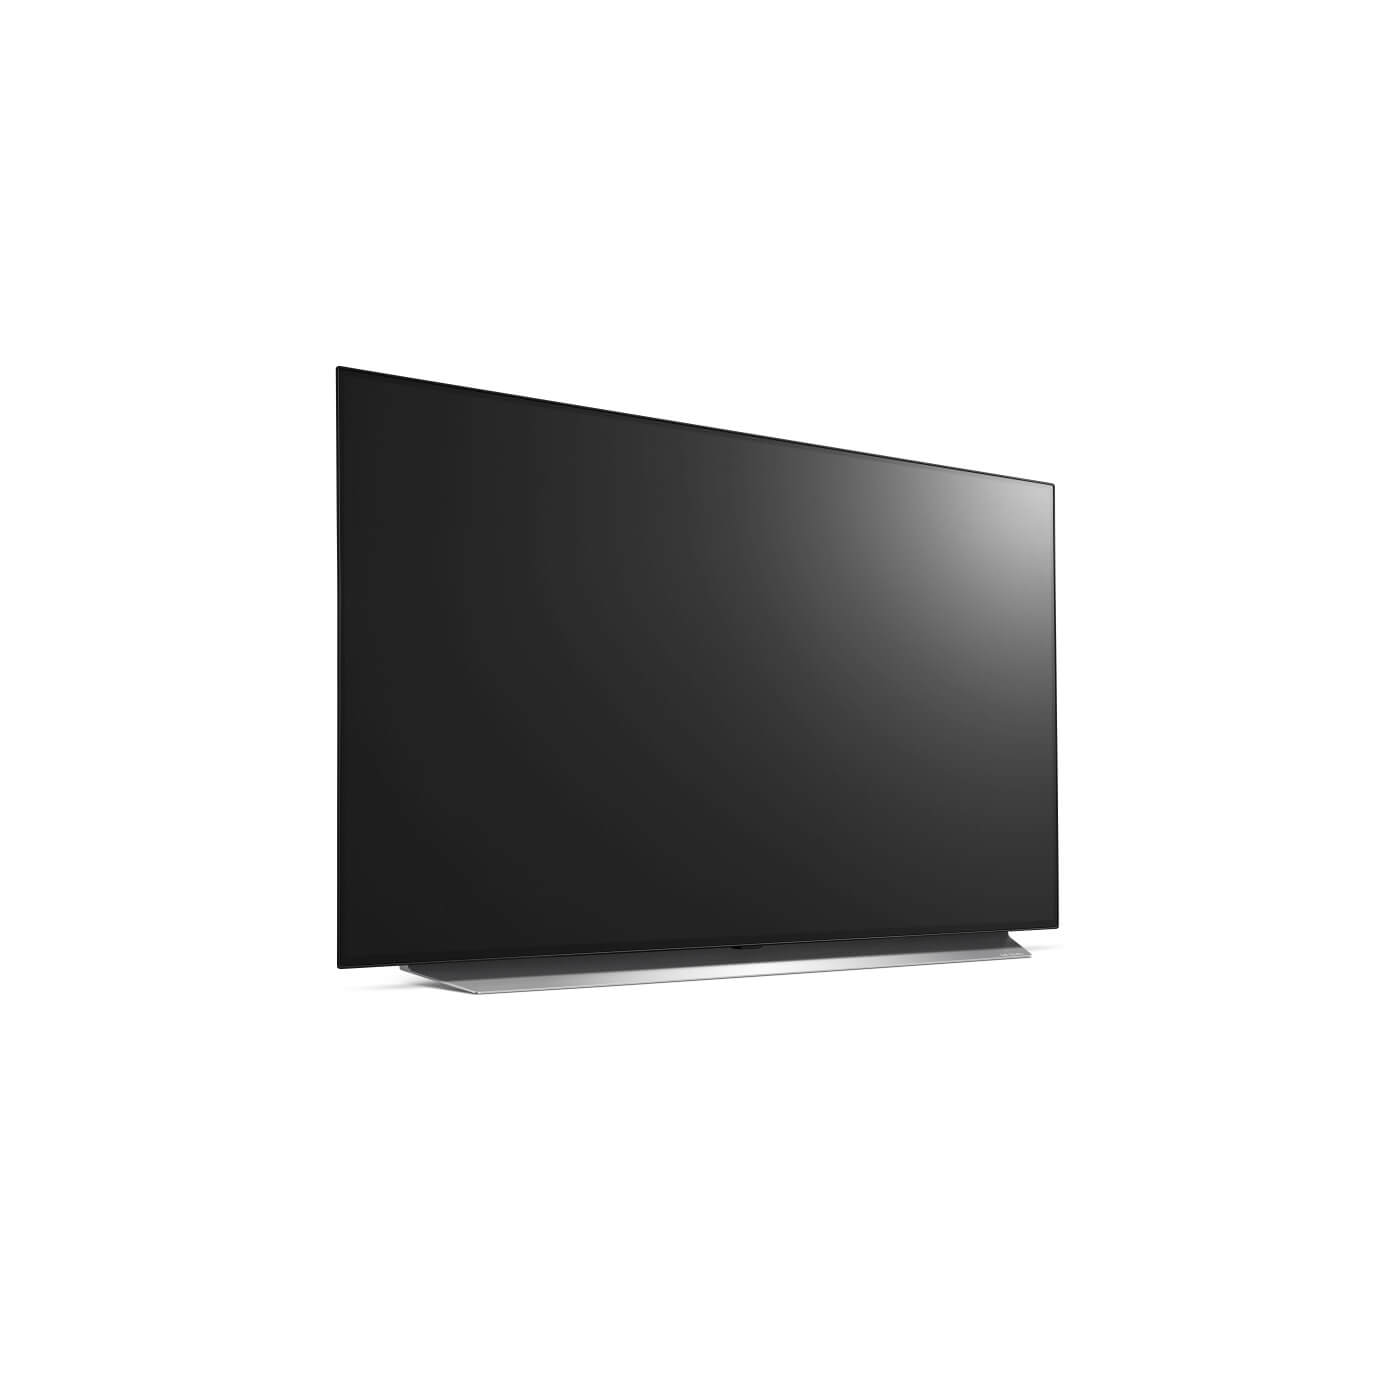 LG OLED 48CX8LC Frontansicht